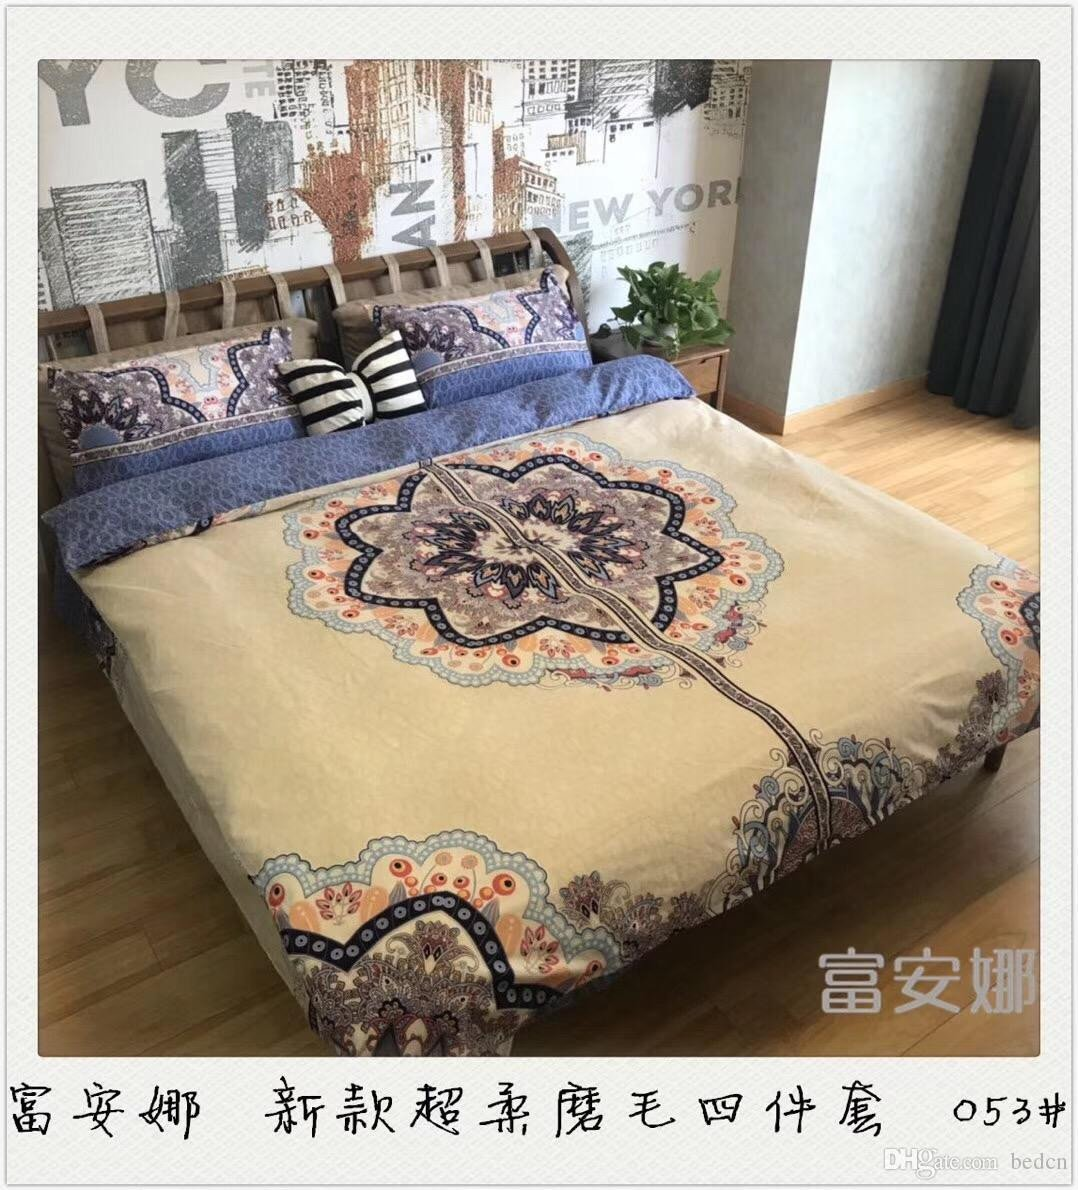 Twin Bedroom Set for Sale New Sweet Pink Panther Animal White Stripebed Sheet Bedding Set Children Bedroom Twin Full Queen Size Duvet Cover Tj 56 oriental Bedding Cheap Duvet From